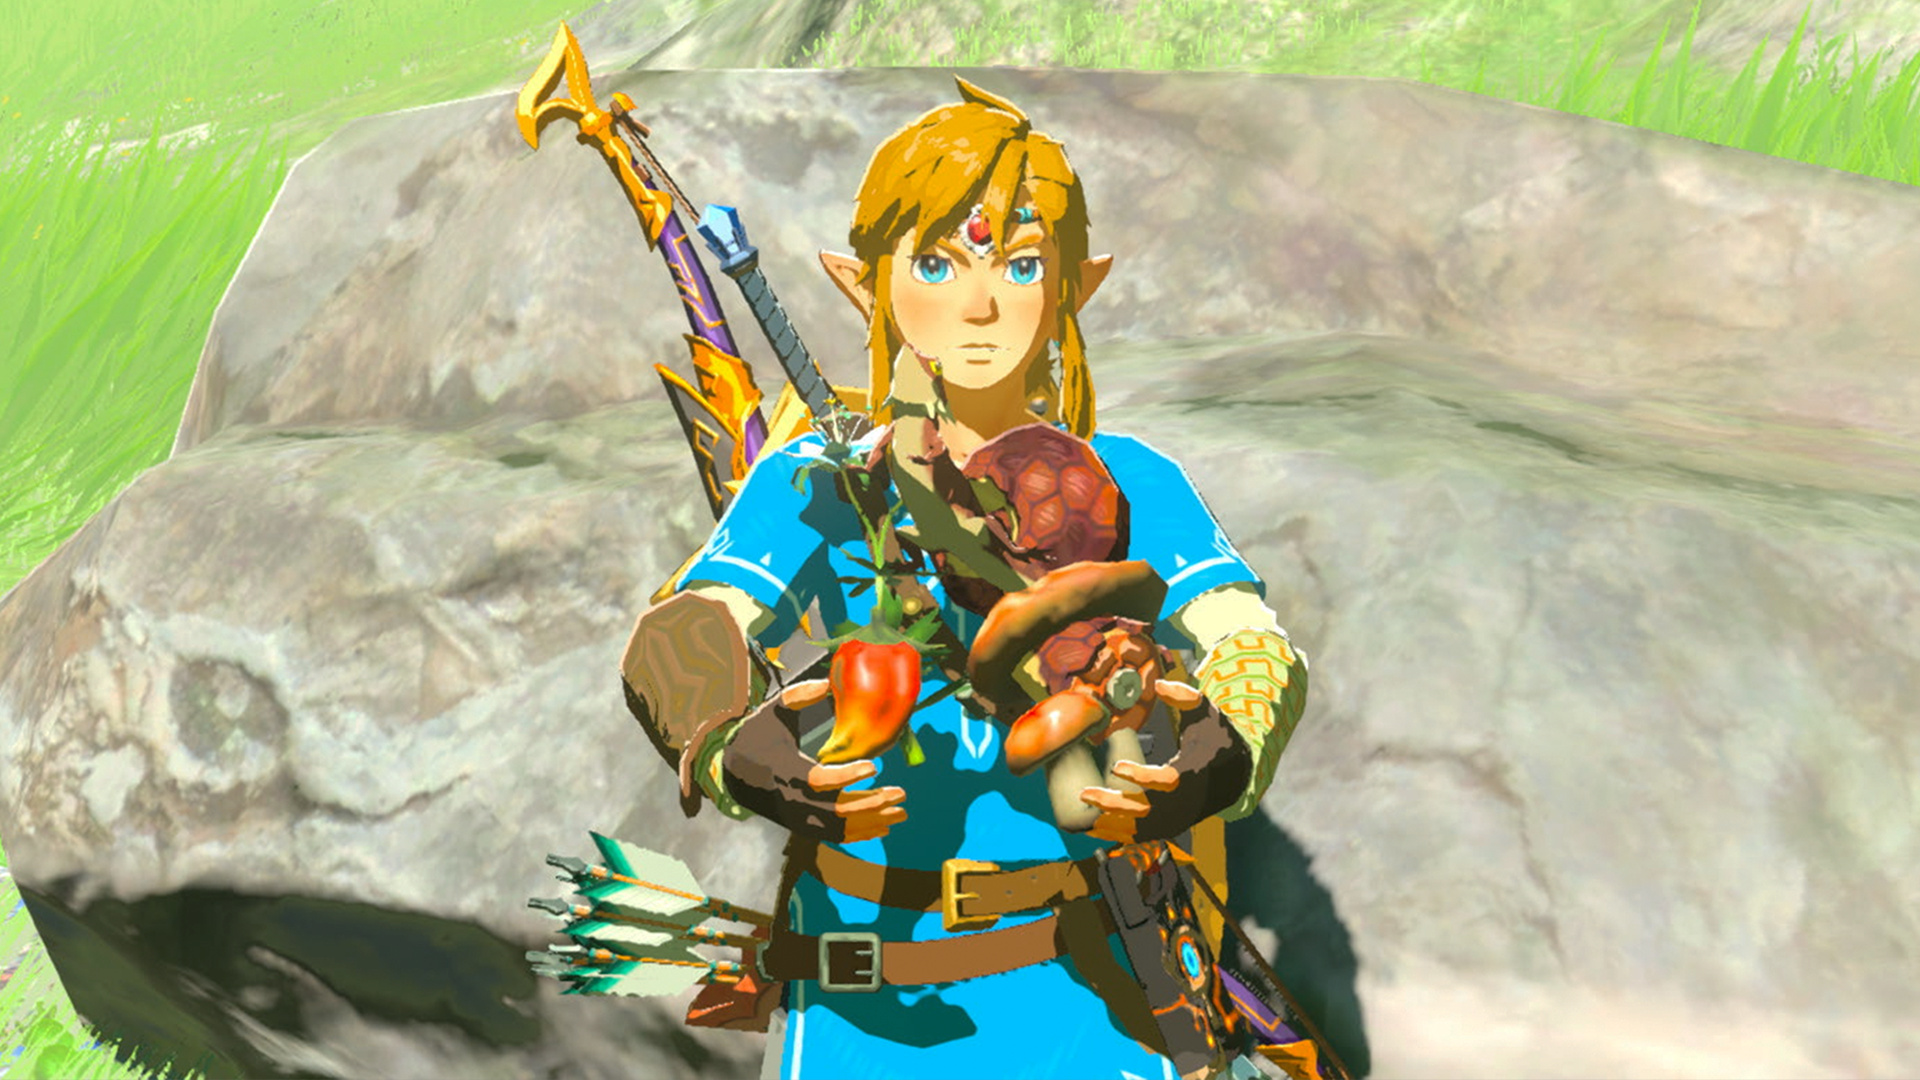 Random World Famous Author Included Zelda Botw Ingredients In His New Book By Mistake Nintendo Life